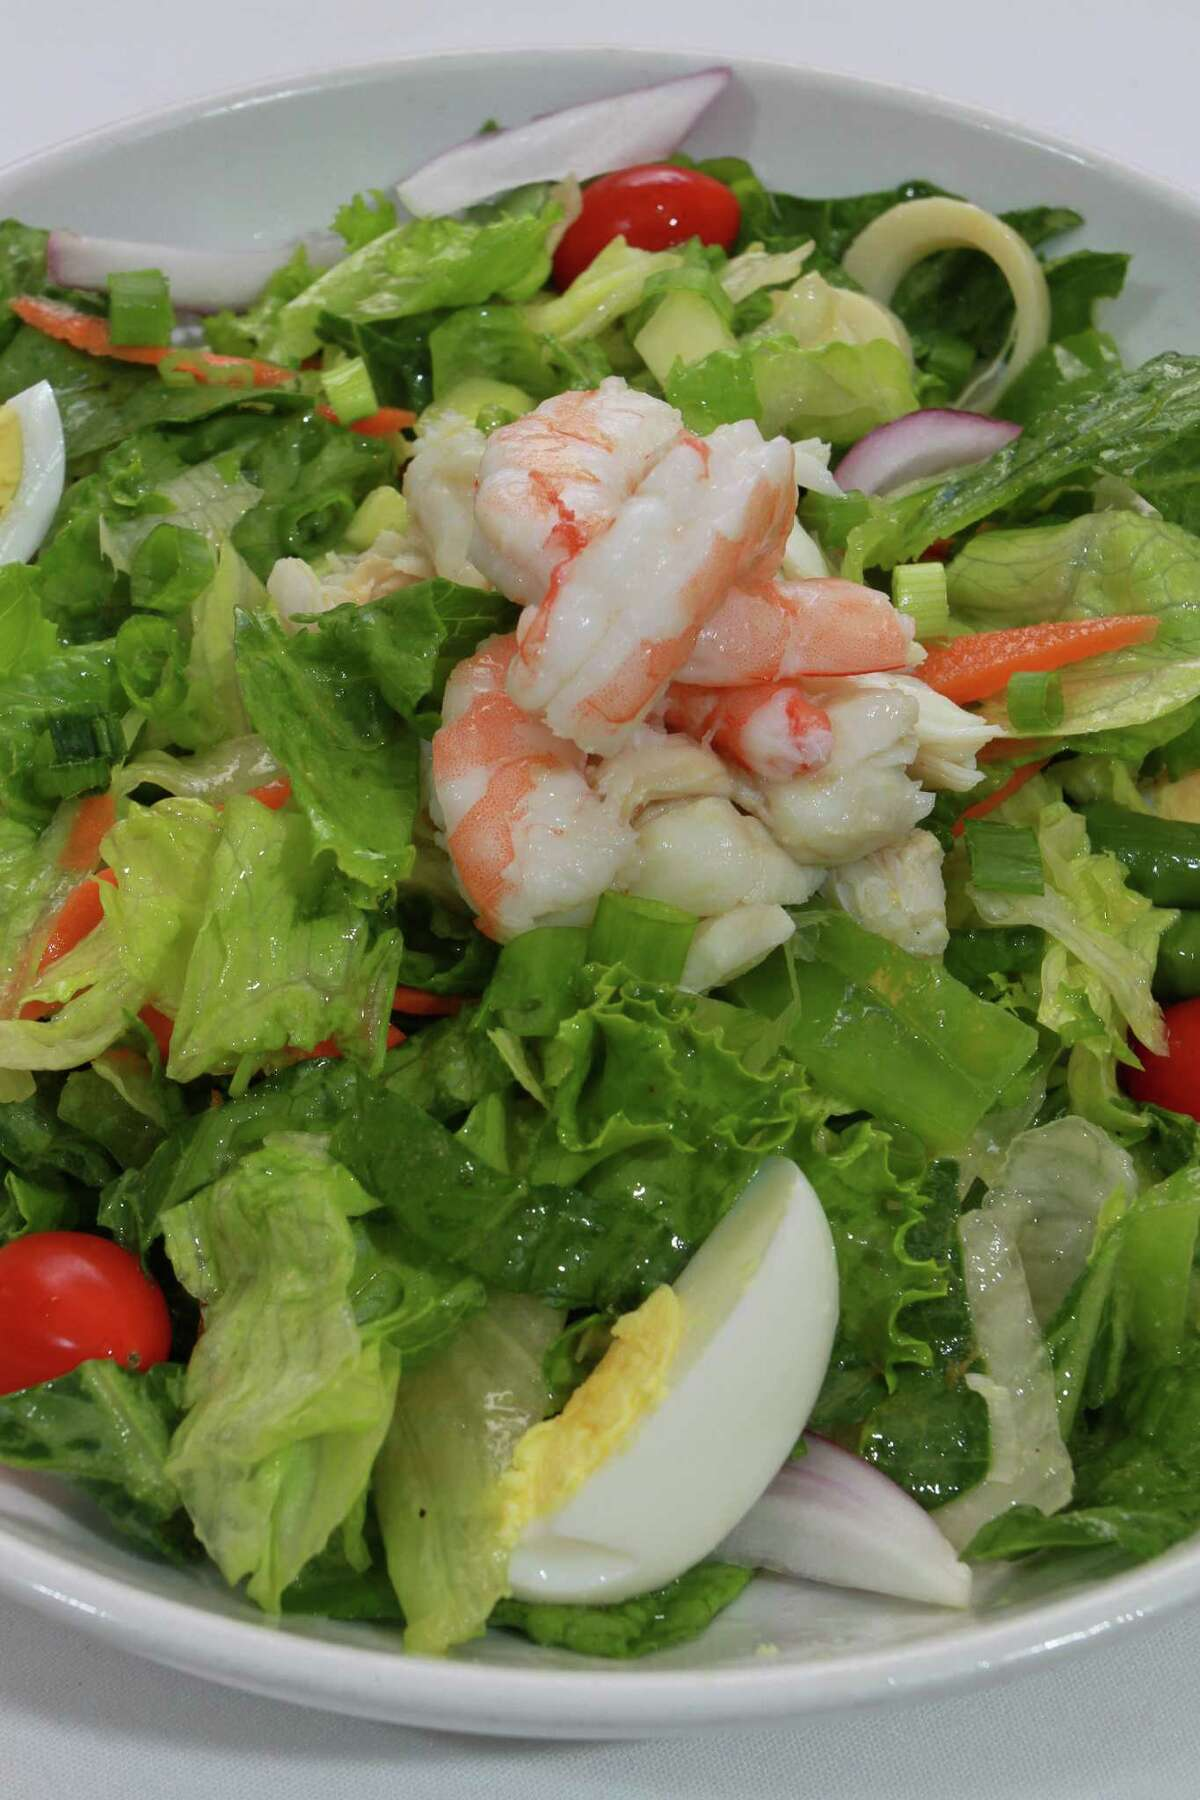 (For the Chronicle/Gary Fountain June 4, 2014) The Seafood Chopped Salad at Christie's Steaks & Seafood.